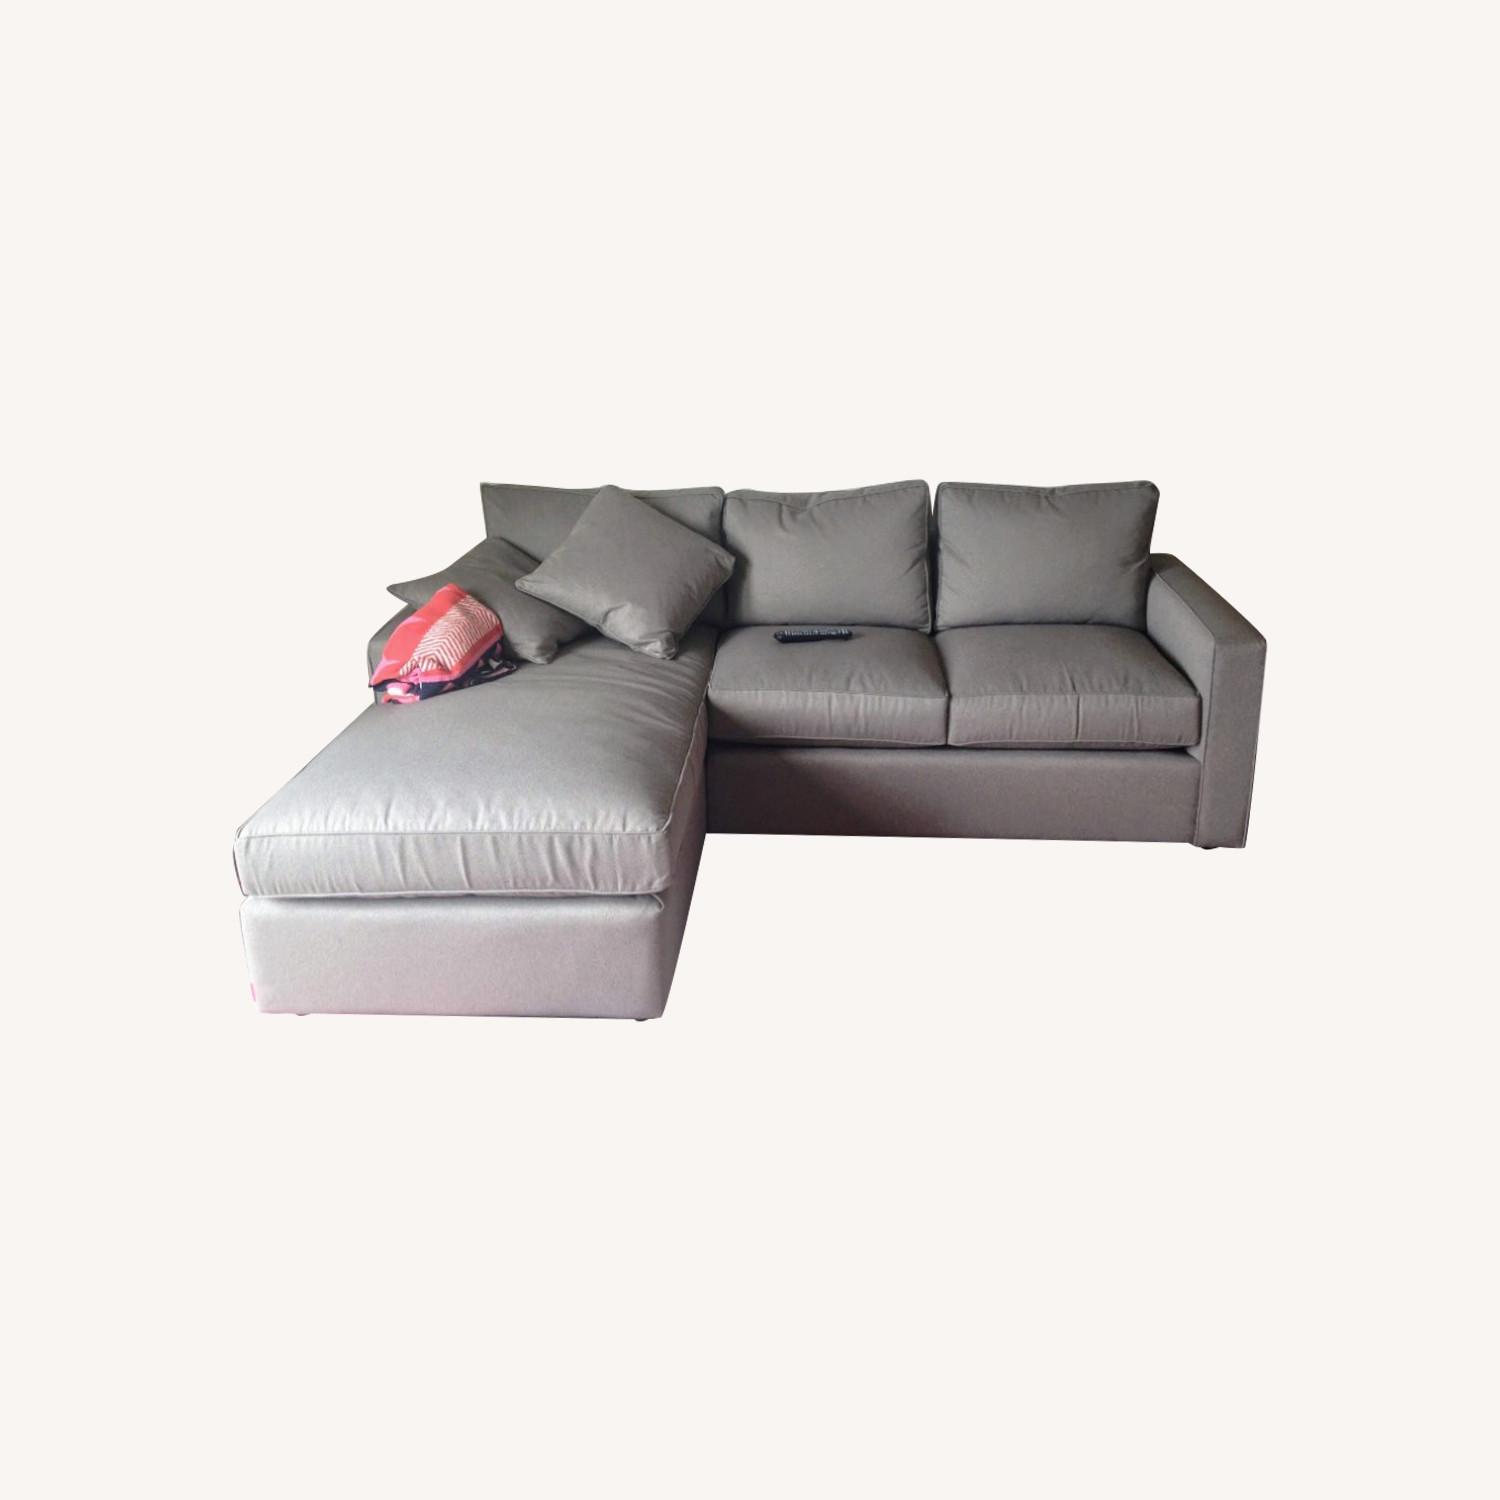 Room & Board Cement Gray Sectional - image-0